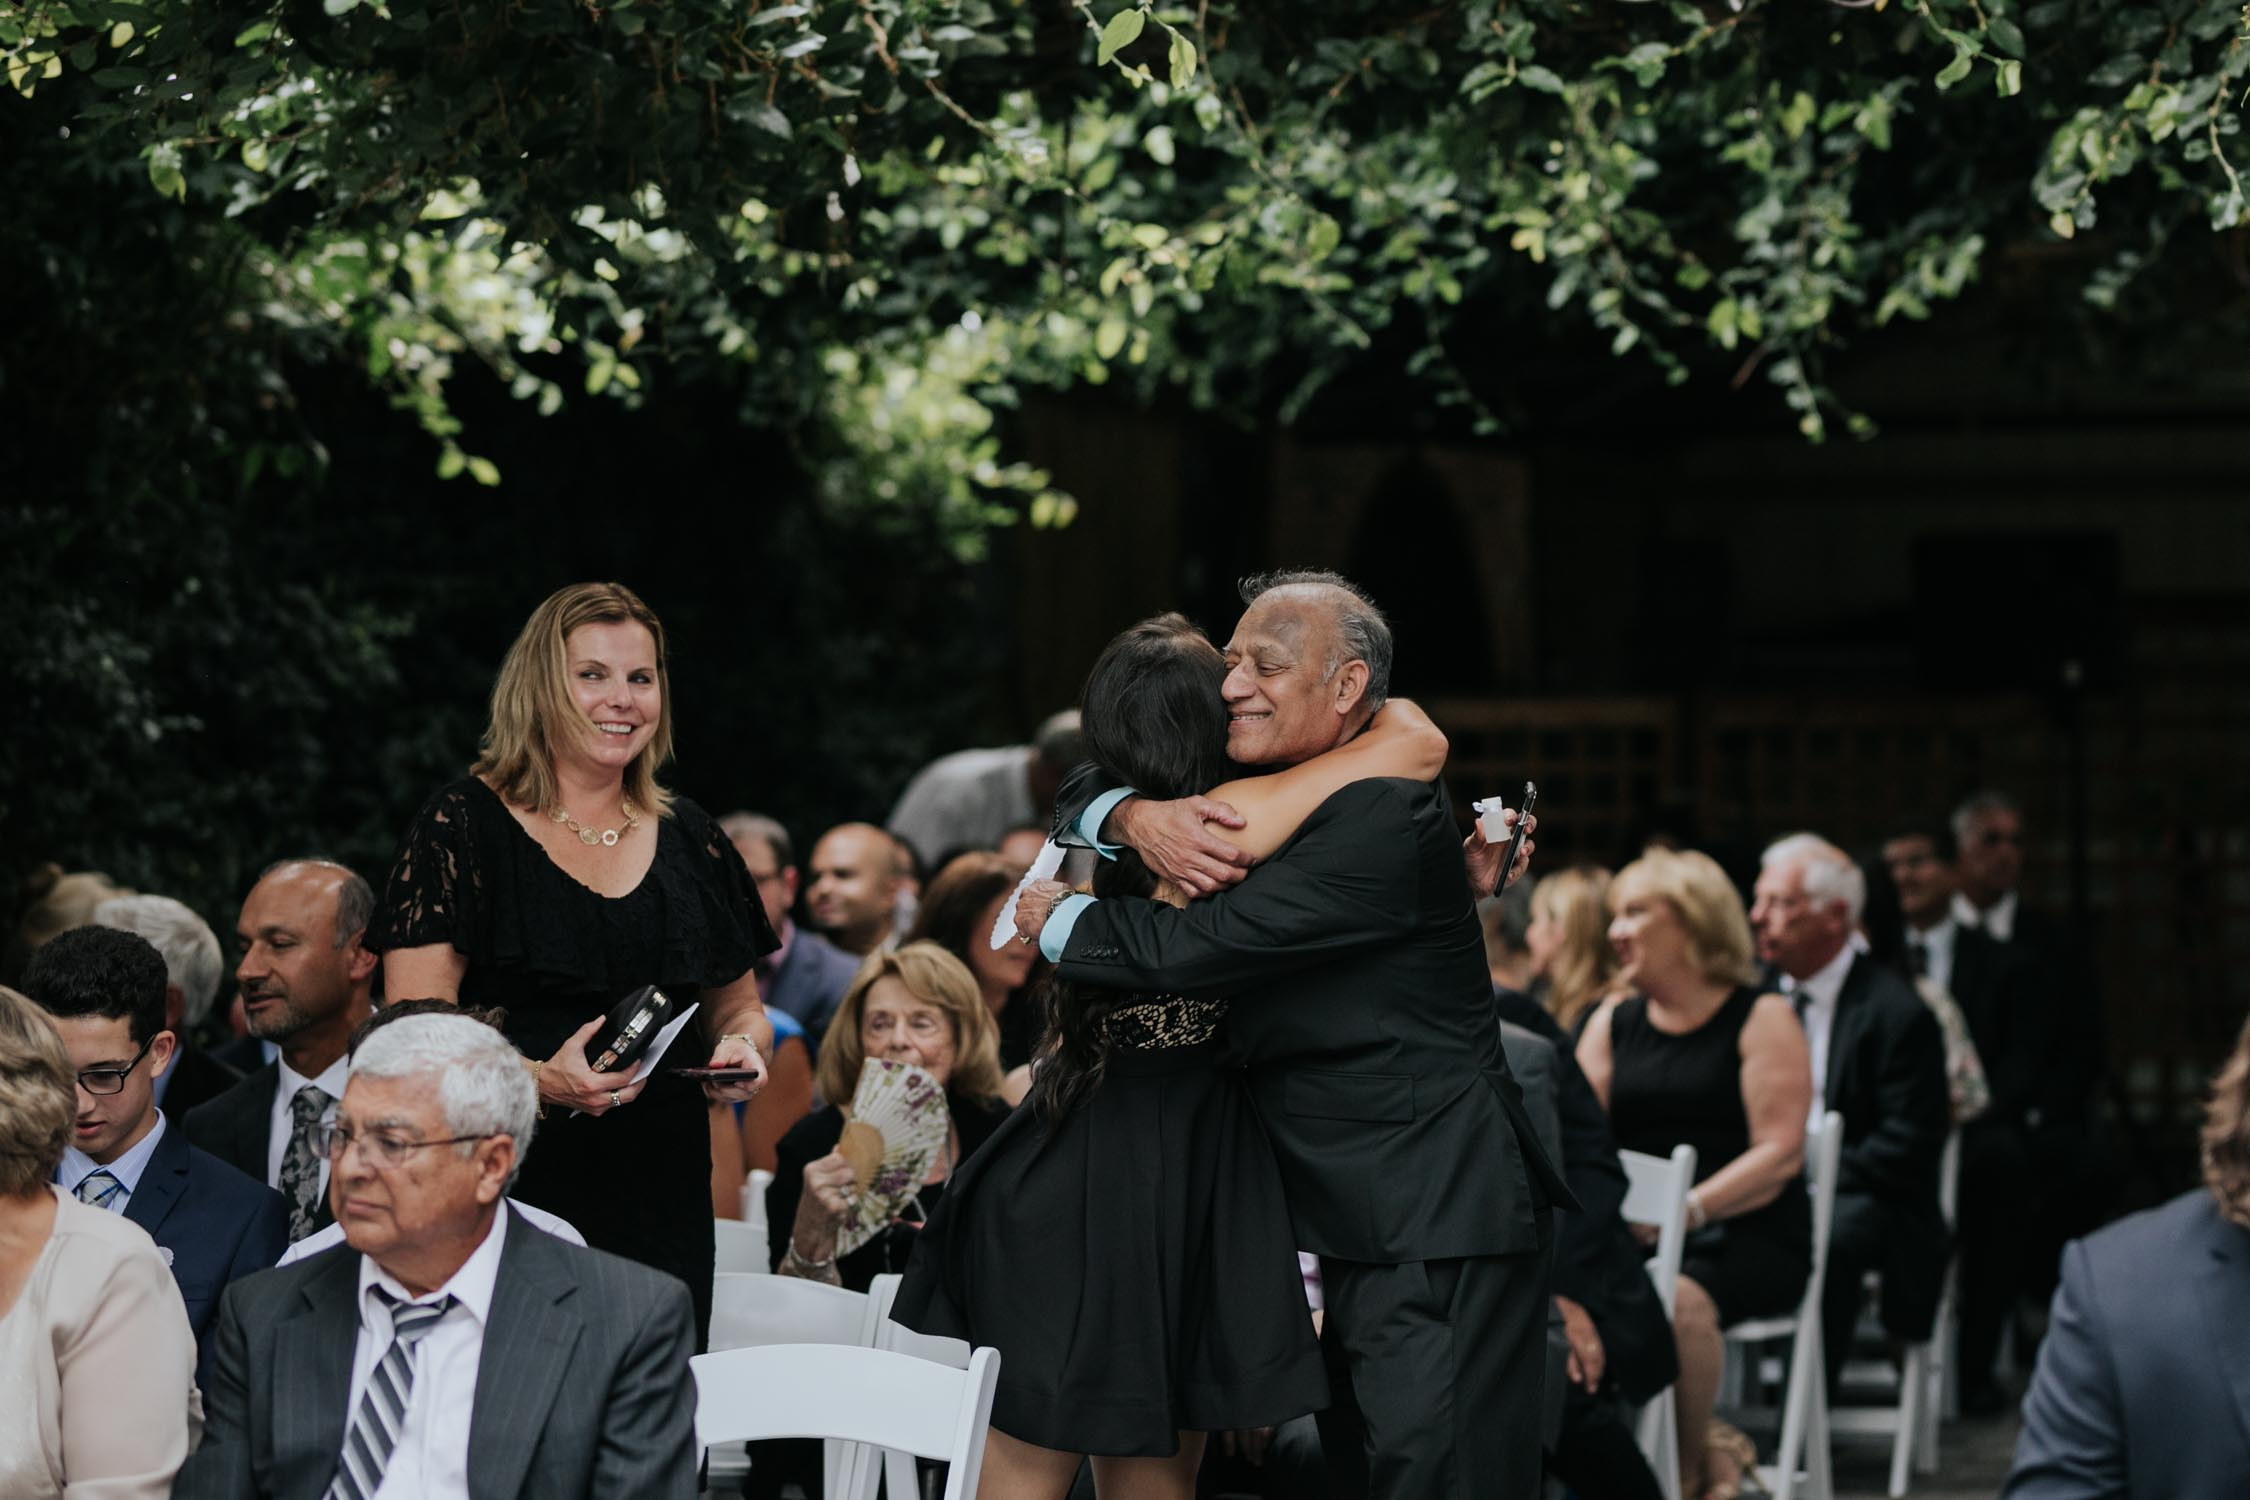 Happy candid photo of father of the bride greeting guests in Greenhouse chapel at Madsen's Greenhouse wedding venue in Newmarket close to Toronto